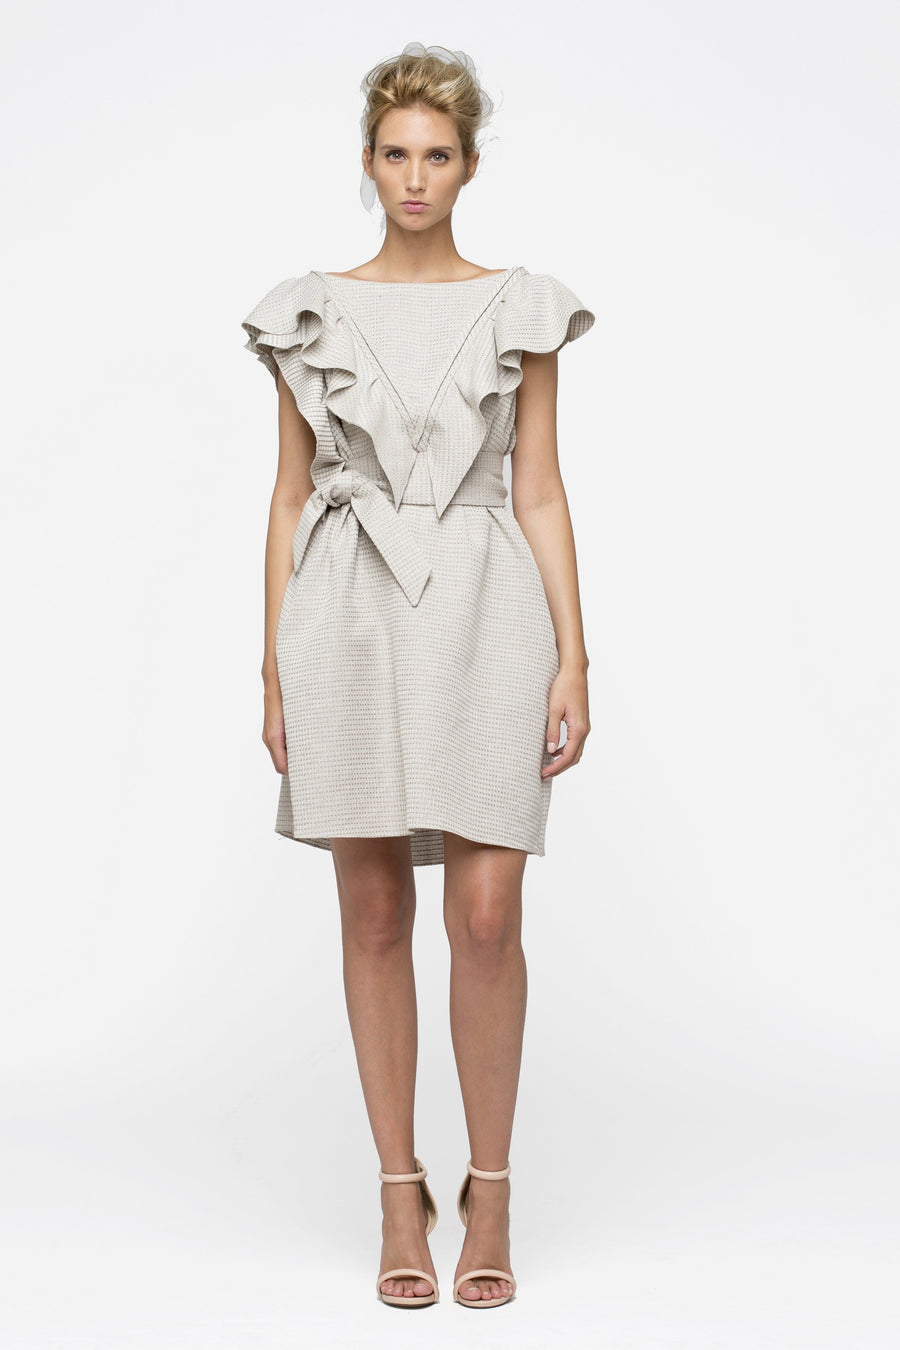 Fly Linen Beige Dress by Lucie Brochard